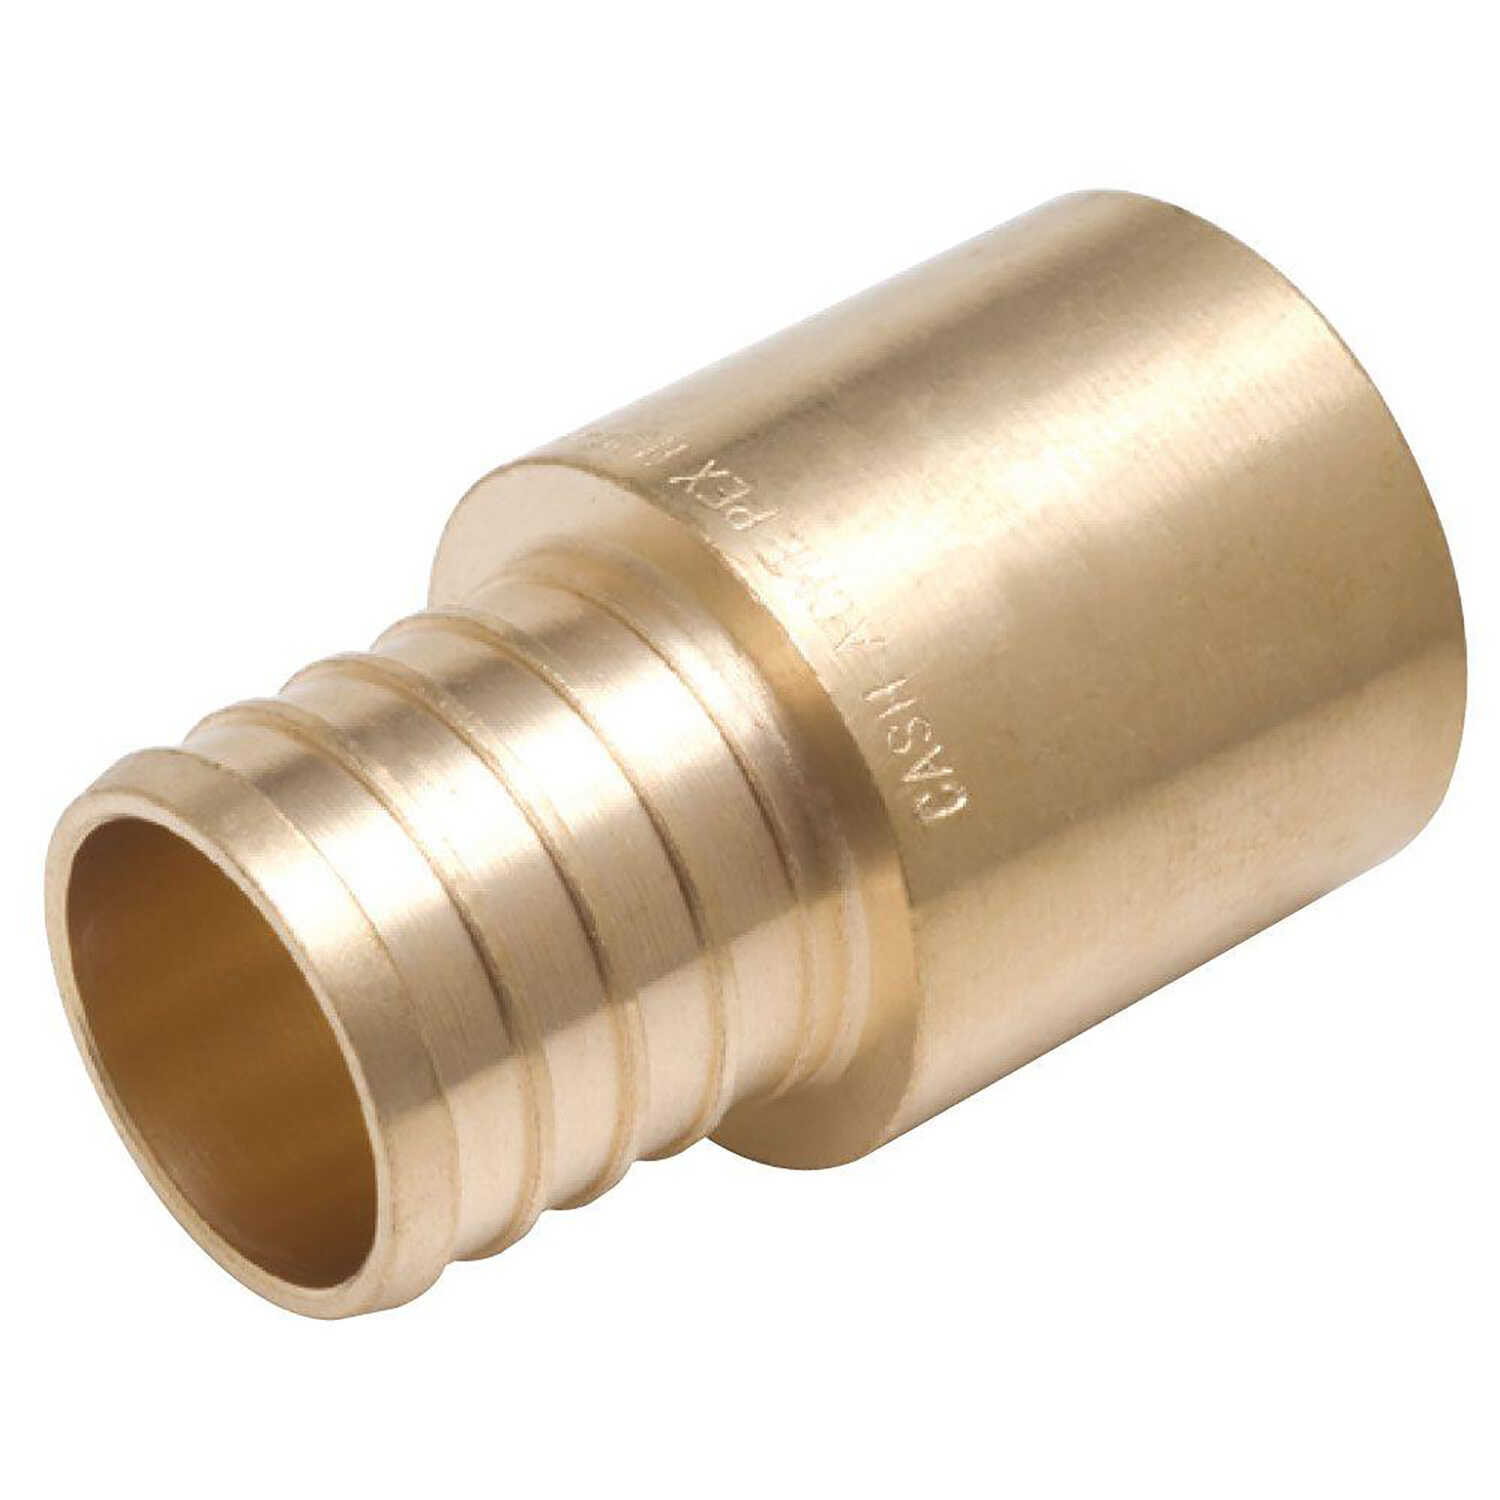 SharkBite  1 in. PEX   x 1 in. Dia. Barb  Brass  Male Adapter